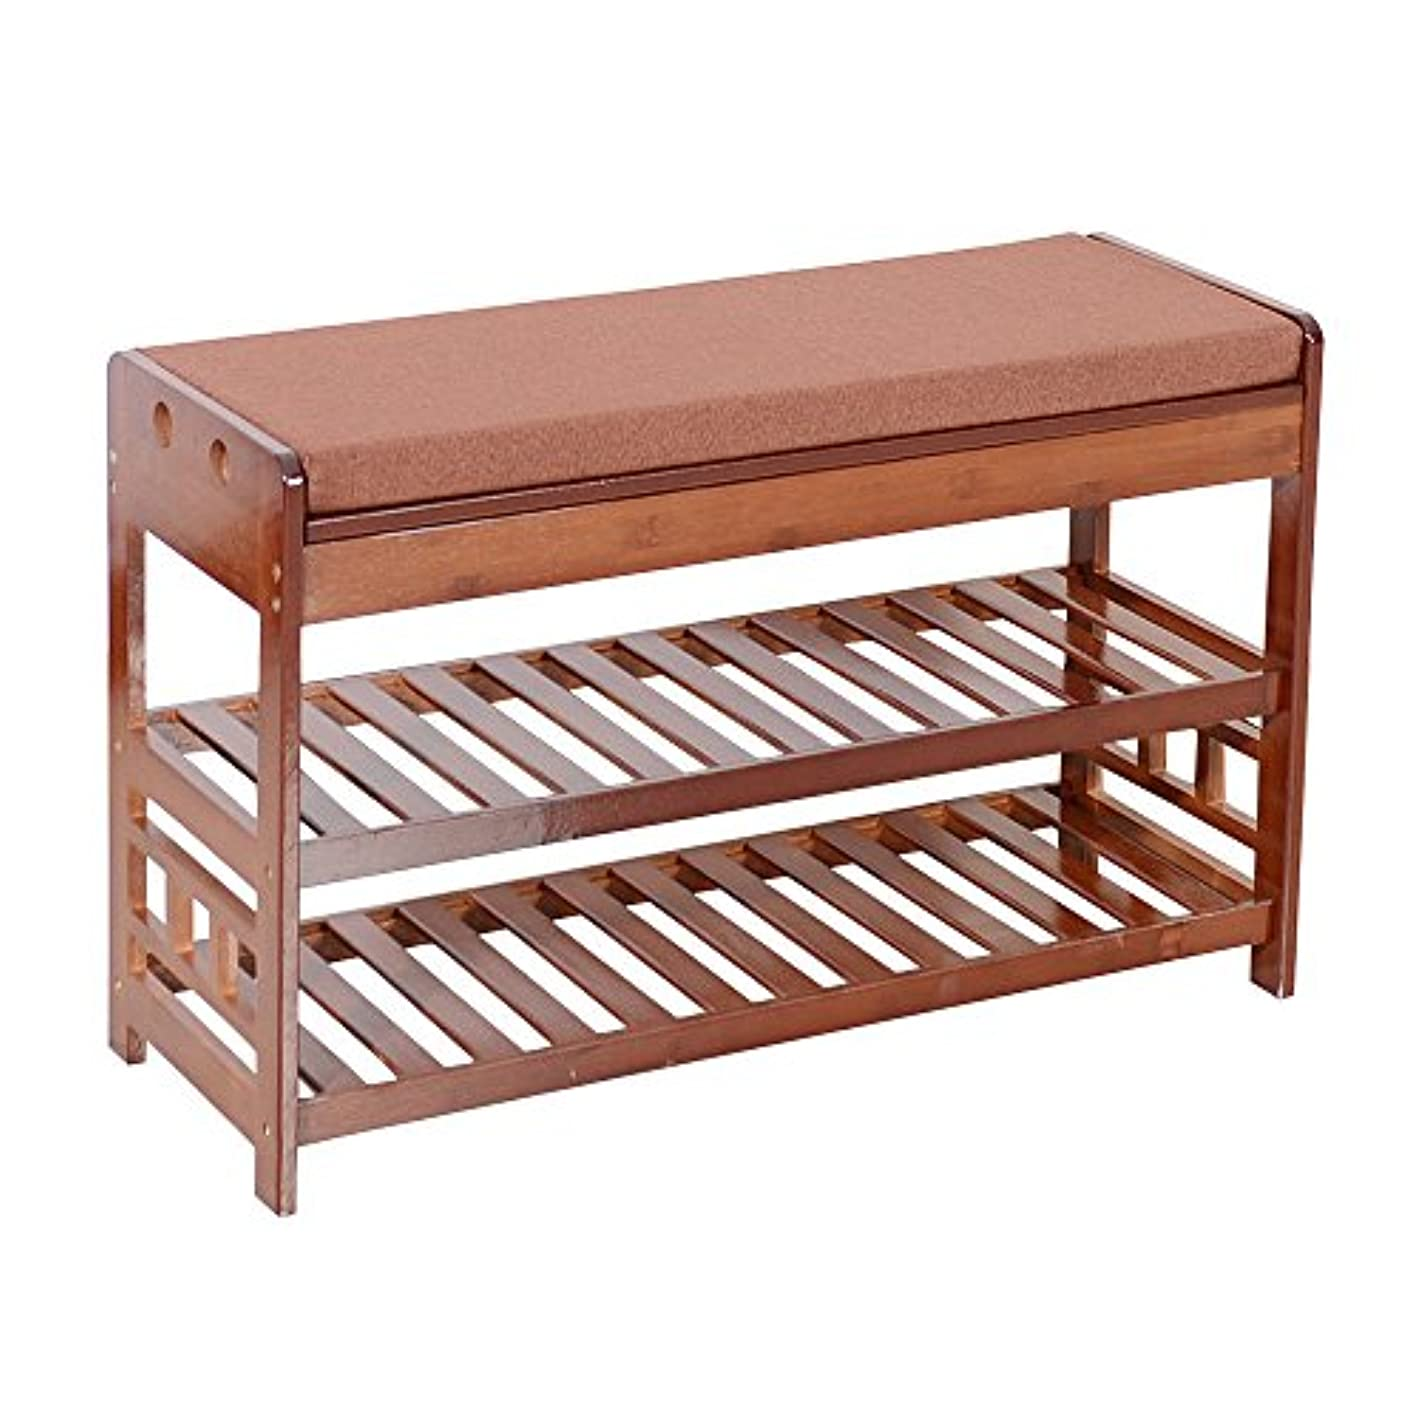 Adumly Natural Bamboo Shoe Rack Bench Entryway Organizer Cozy Seat Storage with Cushion qtxjan5466102